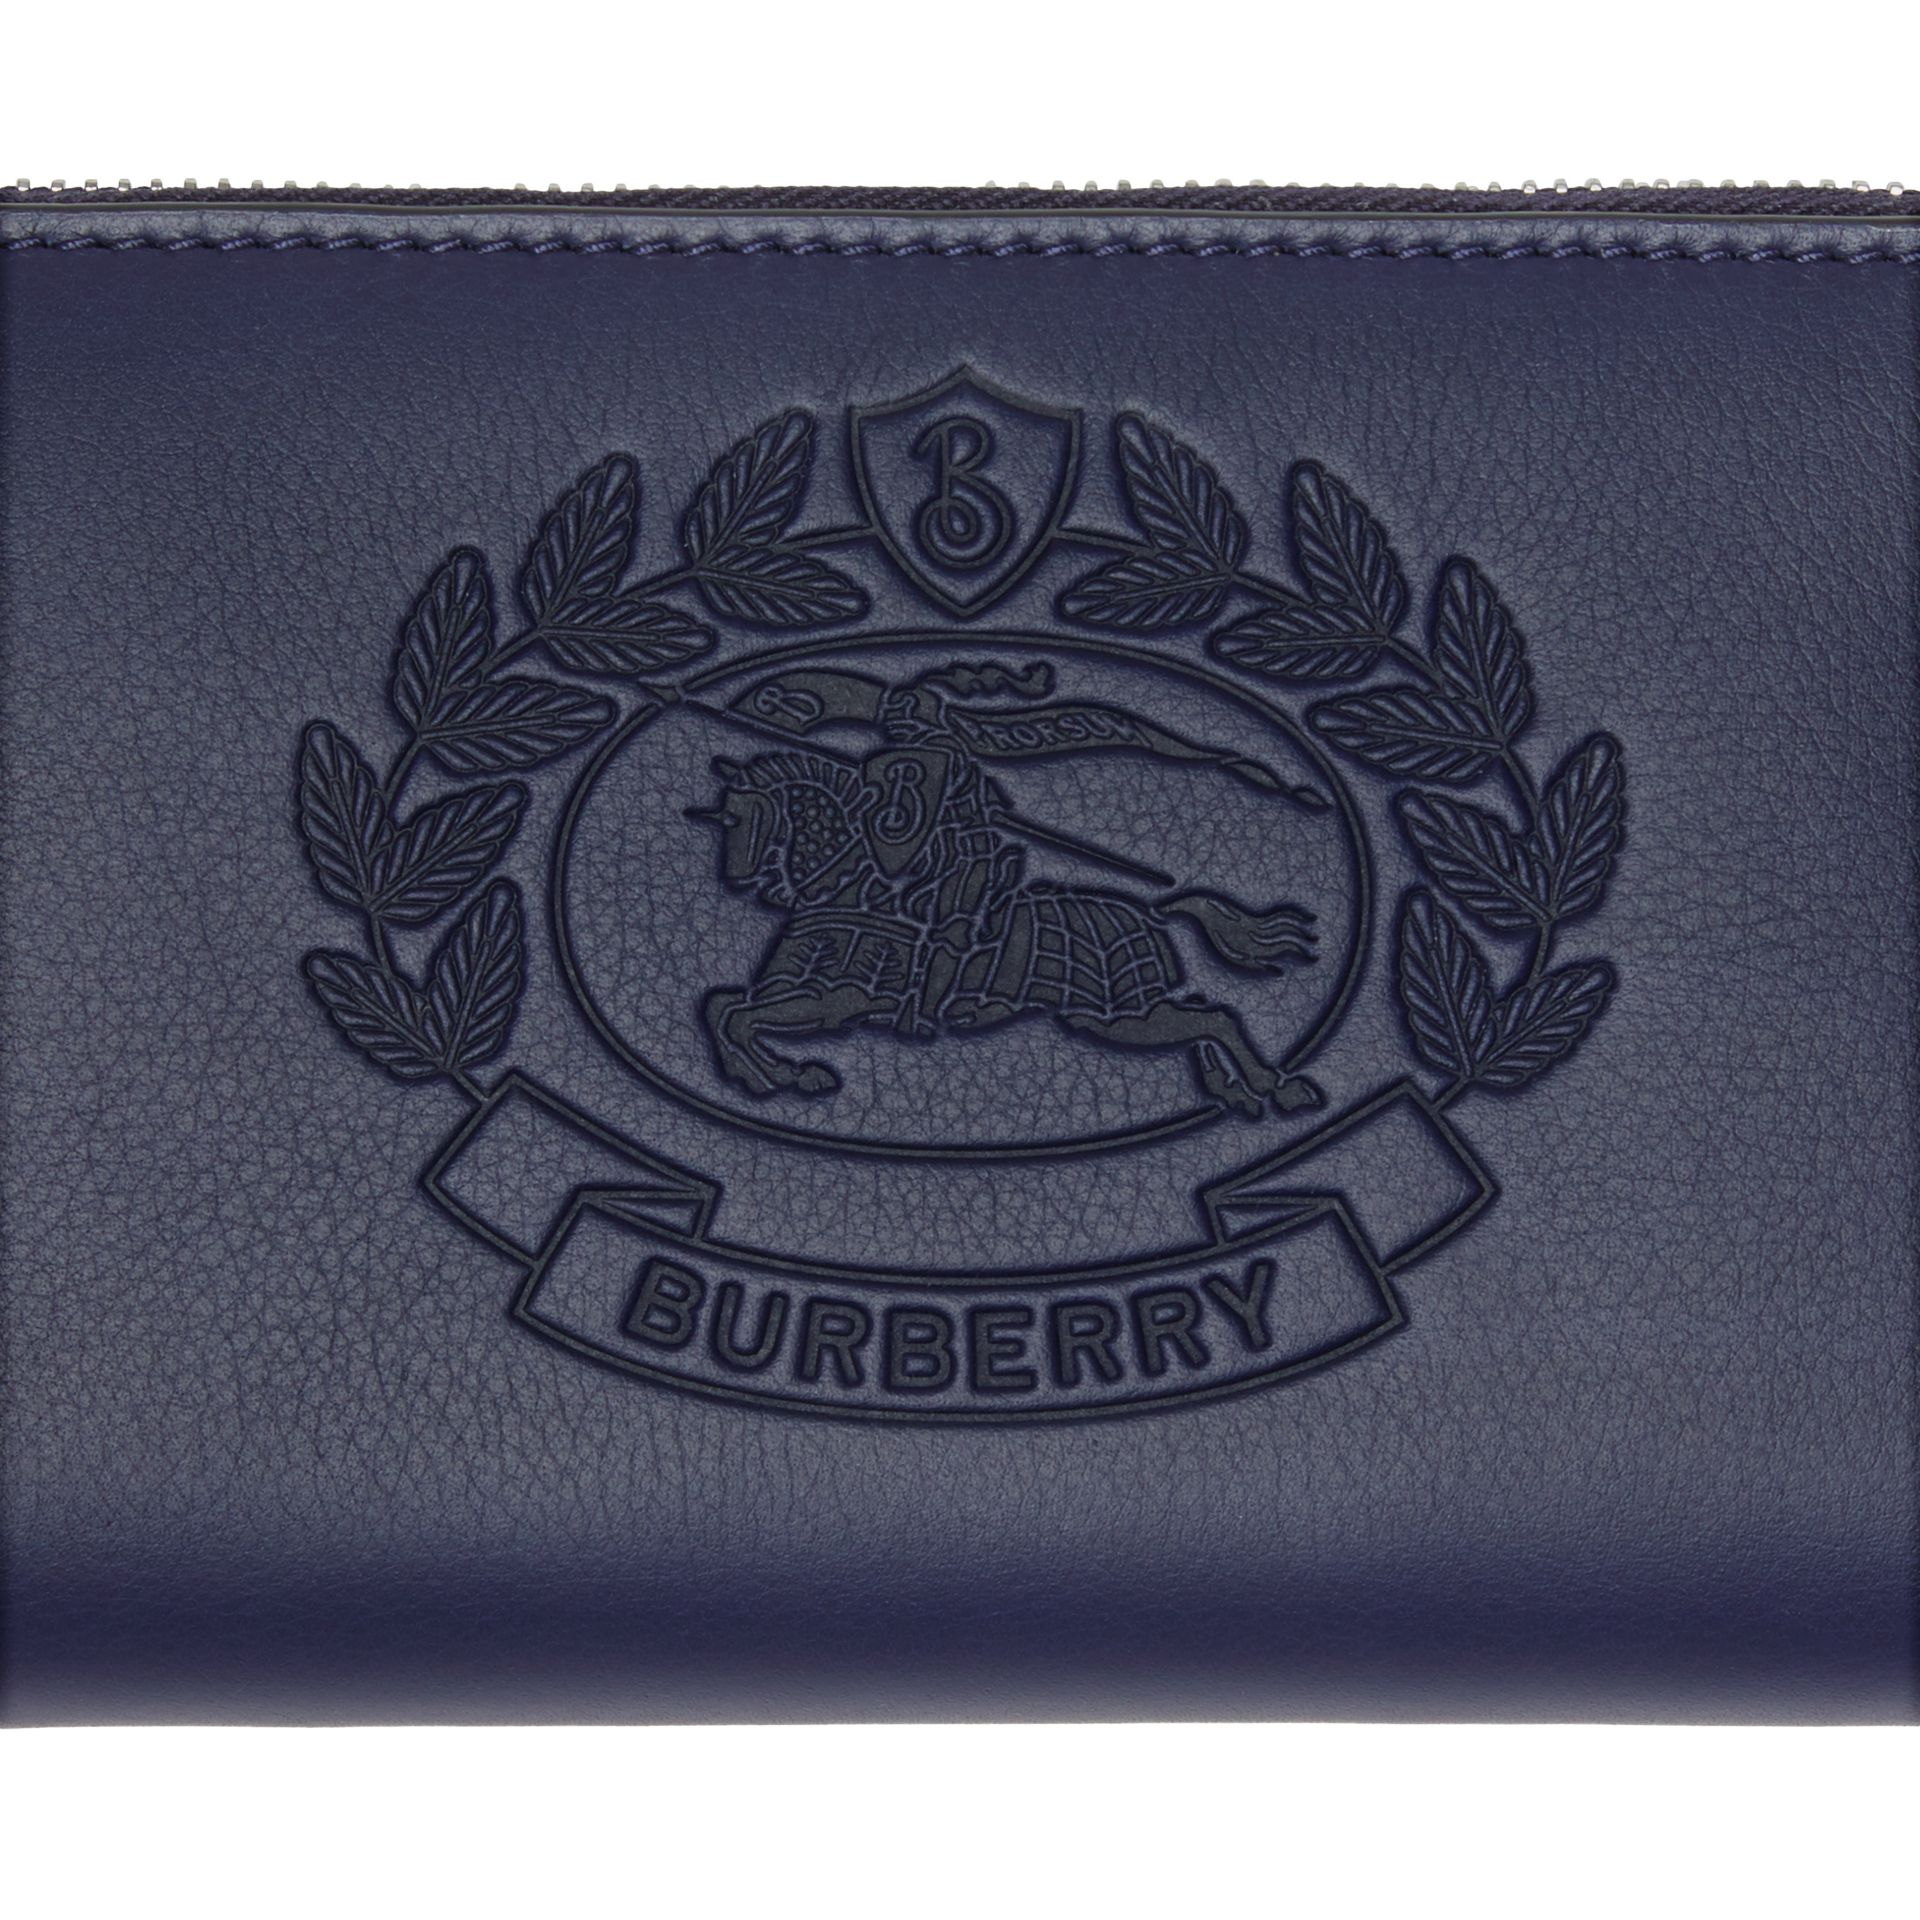 Embossed Crest Two-tone Leather Ziparound Wallet in Regency Blue - Women | Burberry - gallery image 1